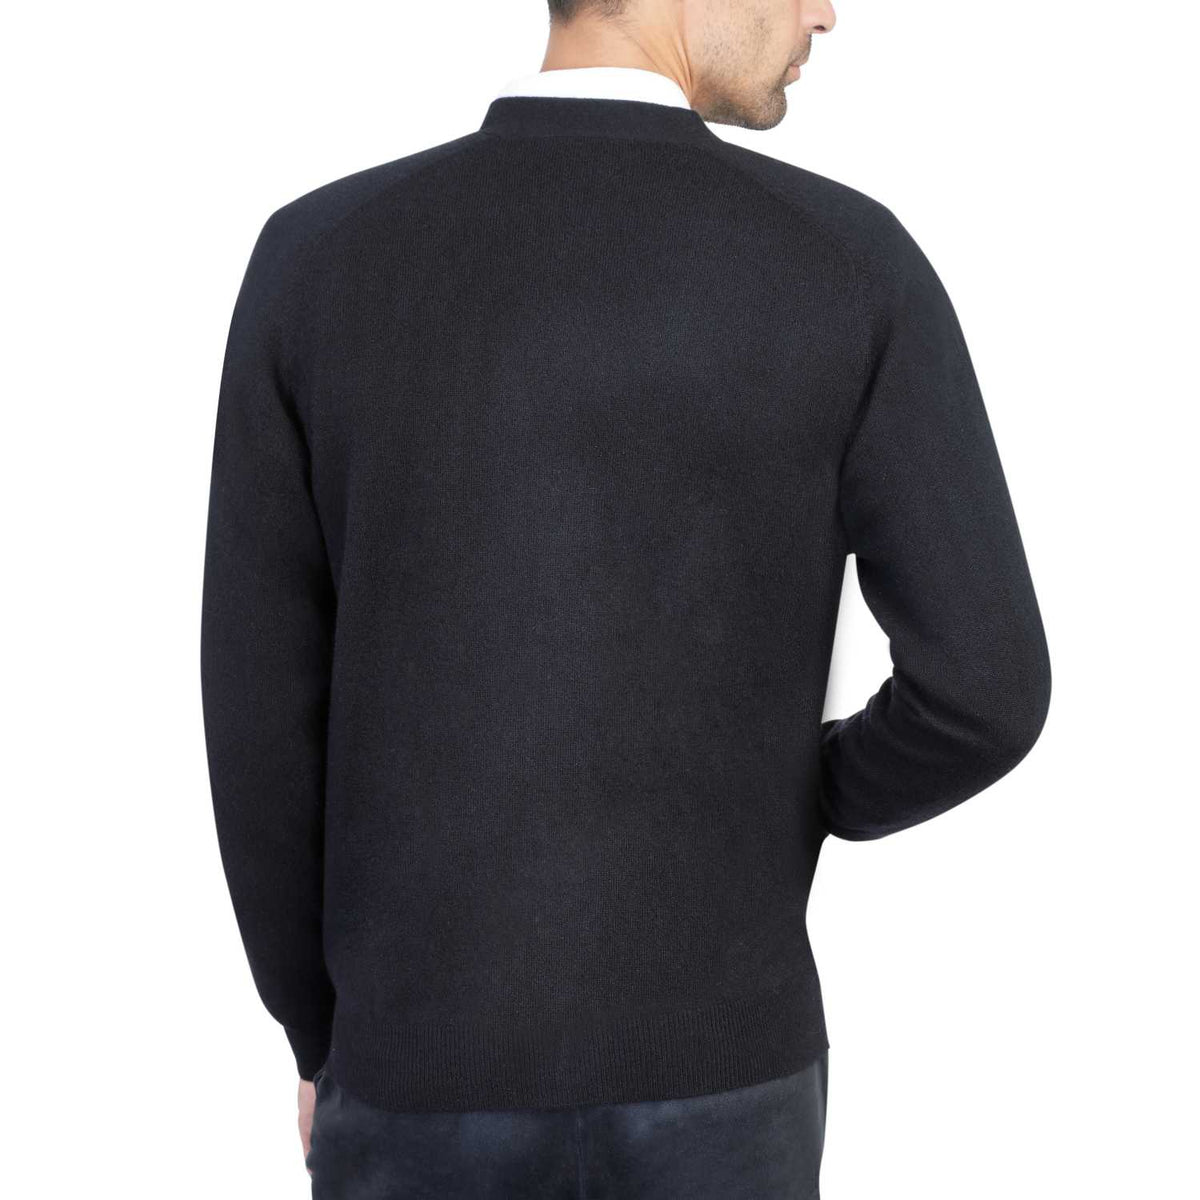 Mens Black Cashmere Cardigan | Back | Shop at The Cashmere Choice | London